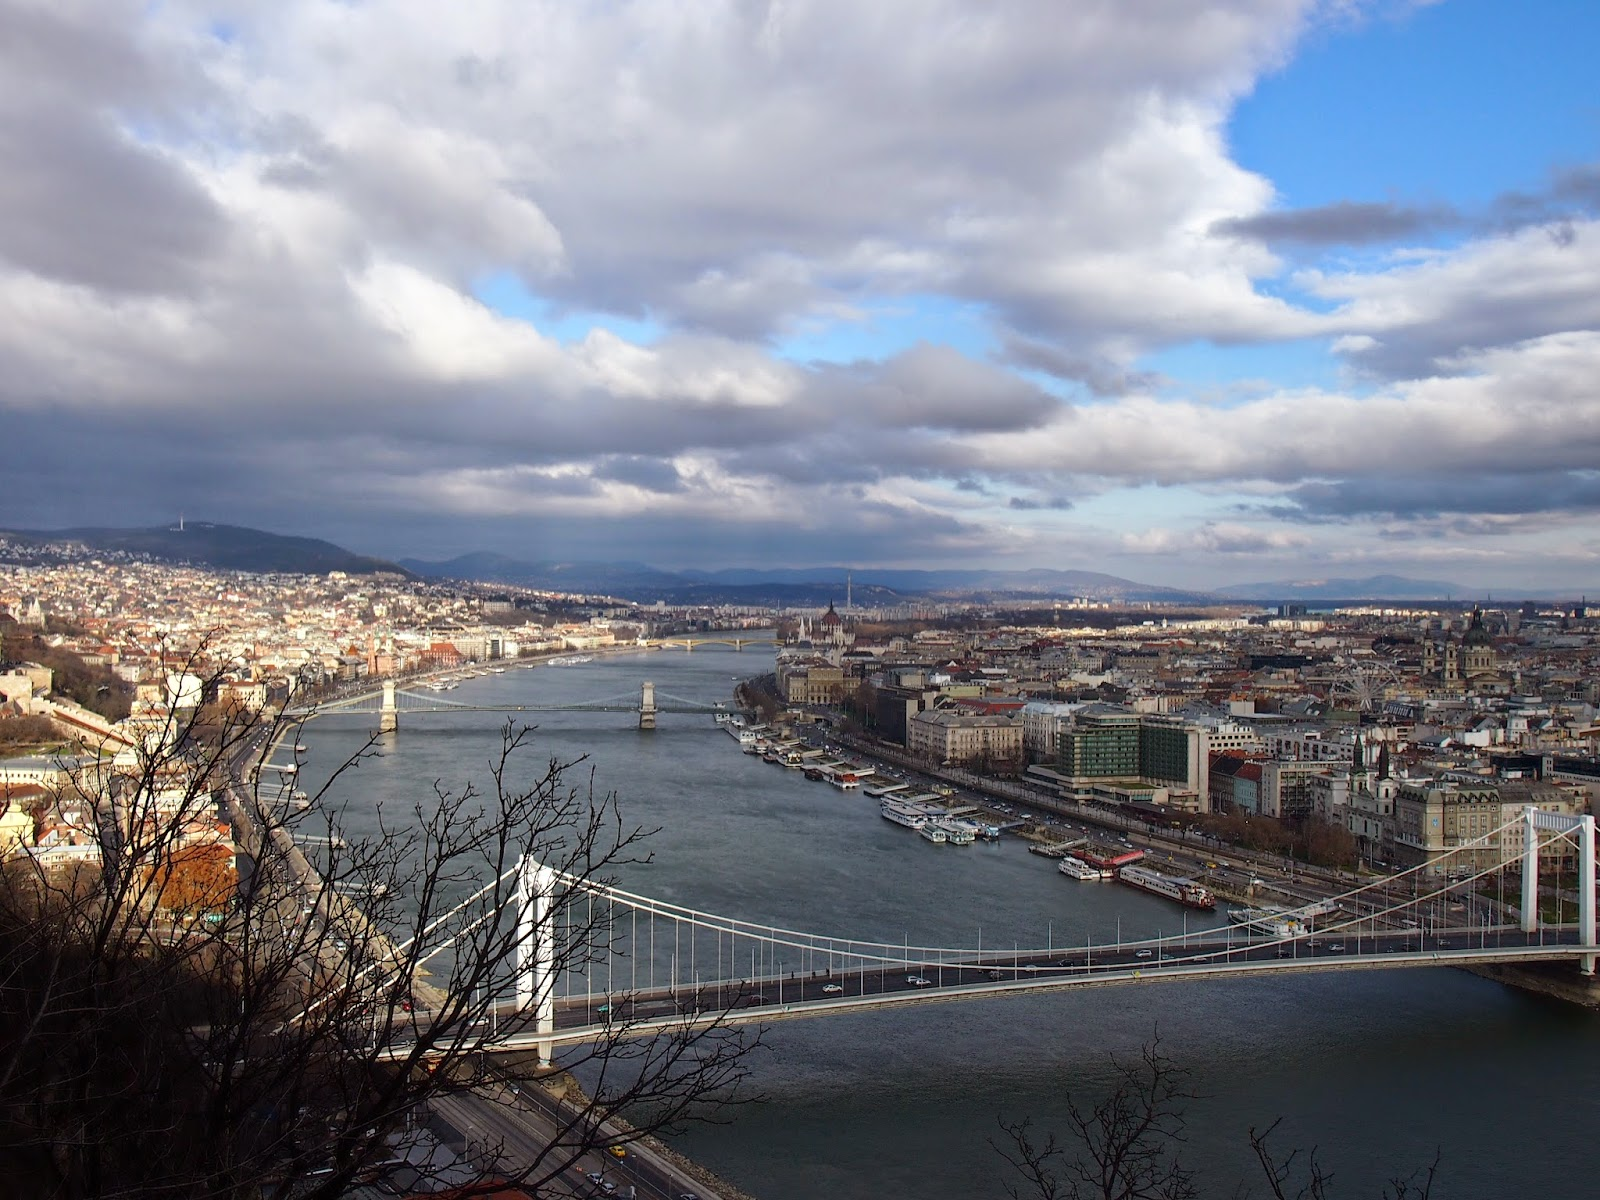 Buda, Pest, and the Danube River